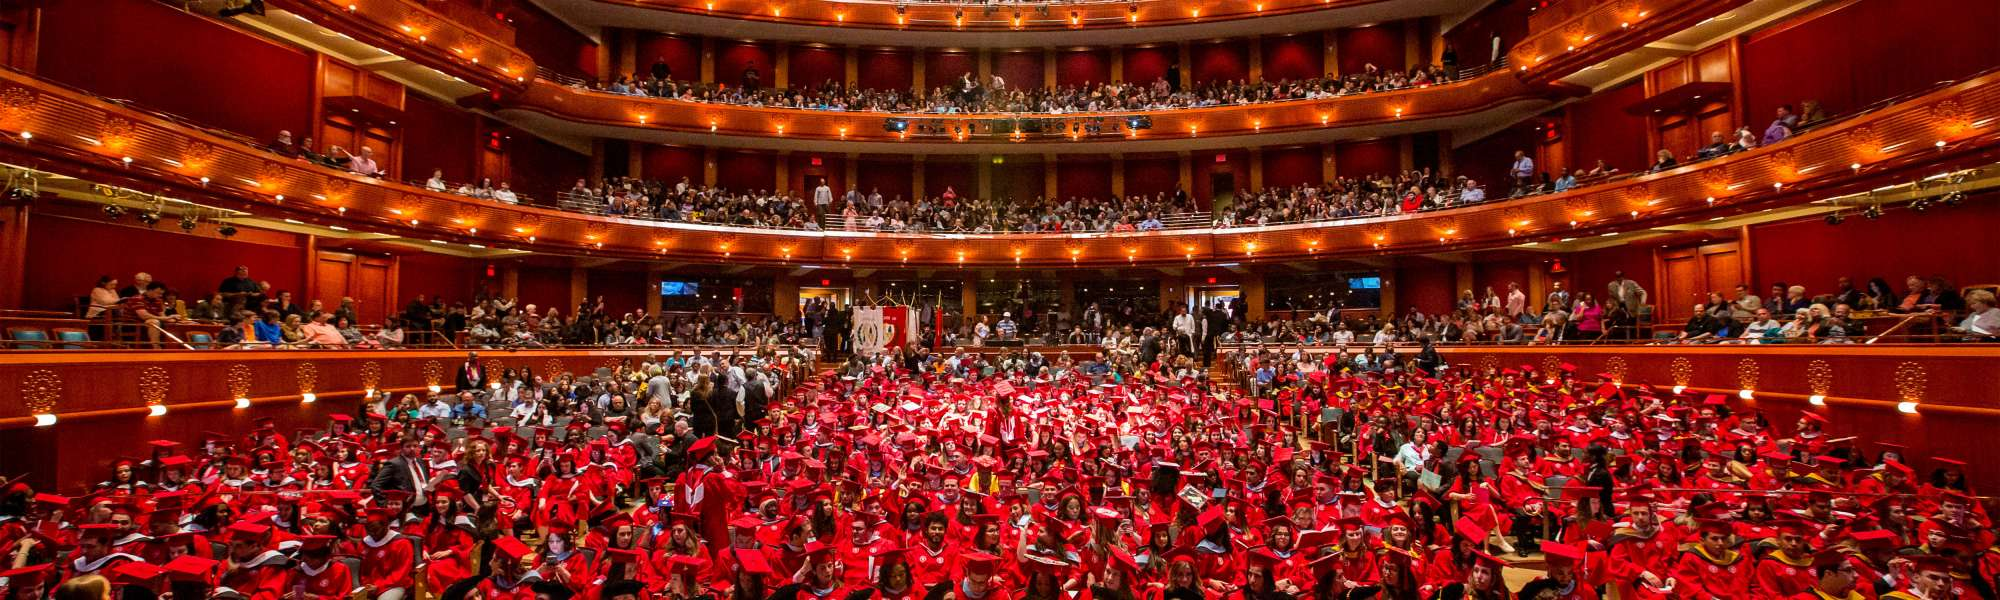 Montclair State University Graduation 2020.Frequently Asked Questions Commencement Montclair State